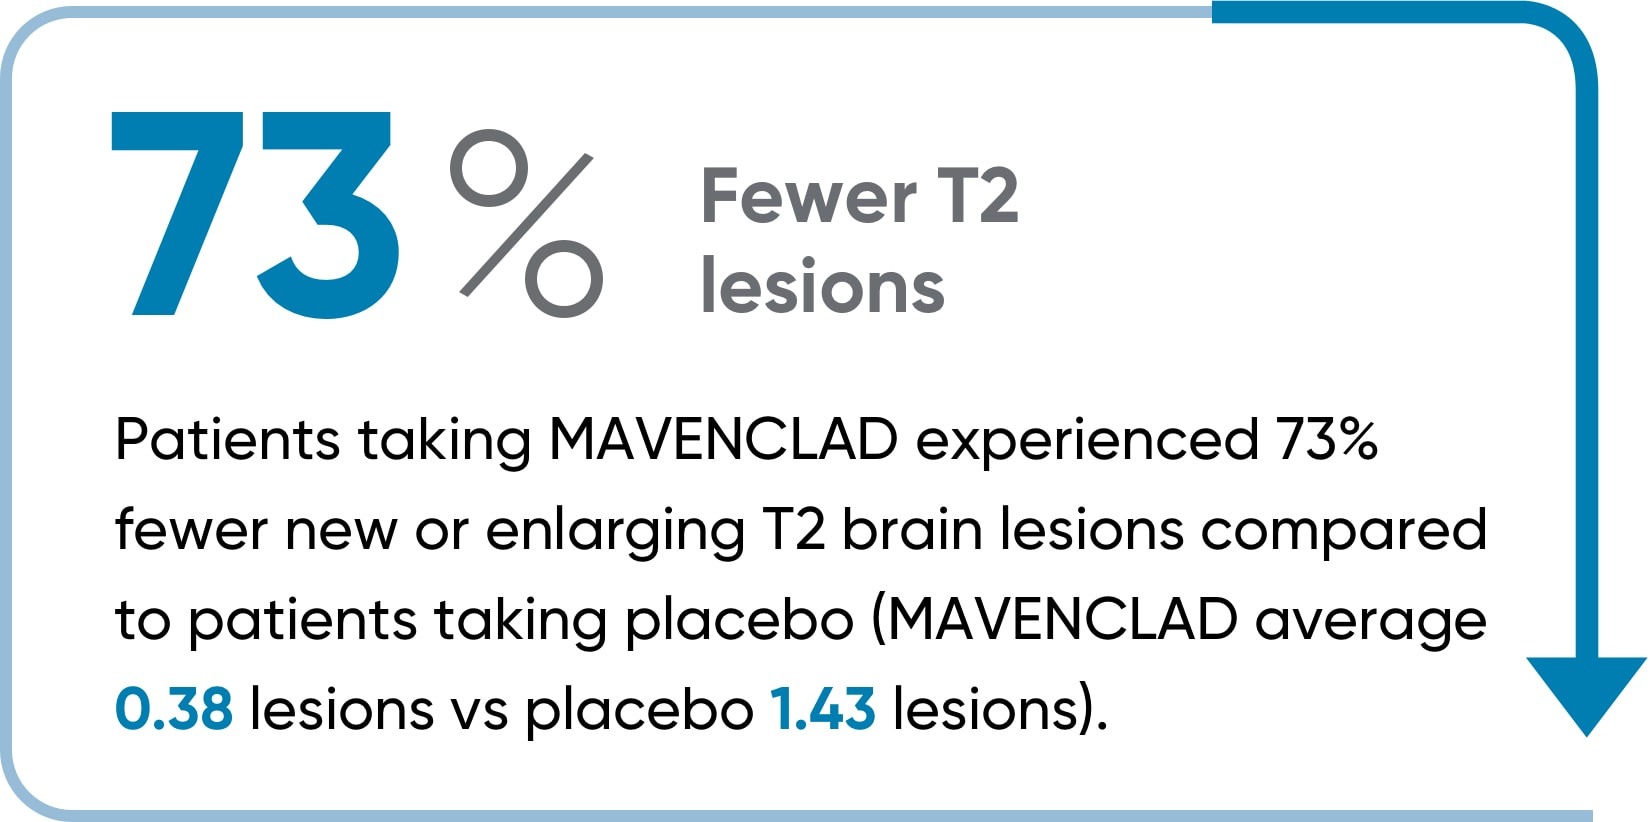 MAVENCLAD® patients had 73% fewer T2 lesions than patients taking placebo